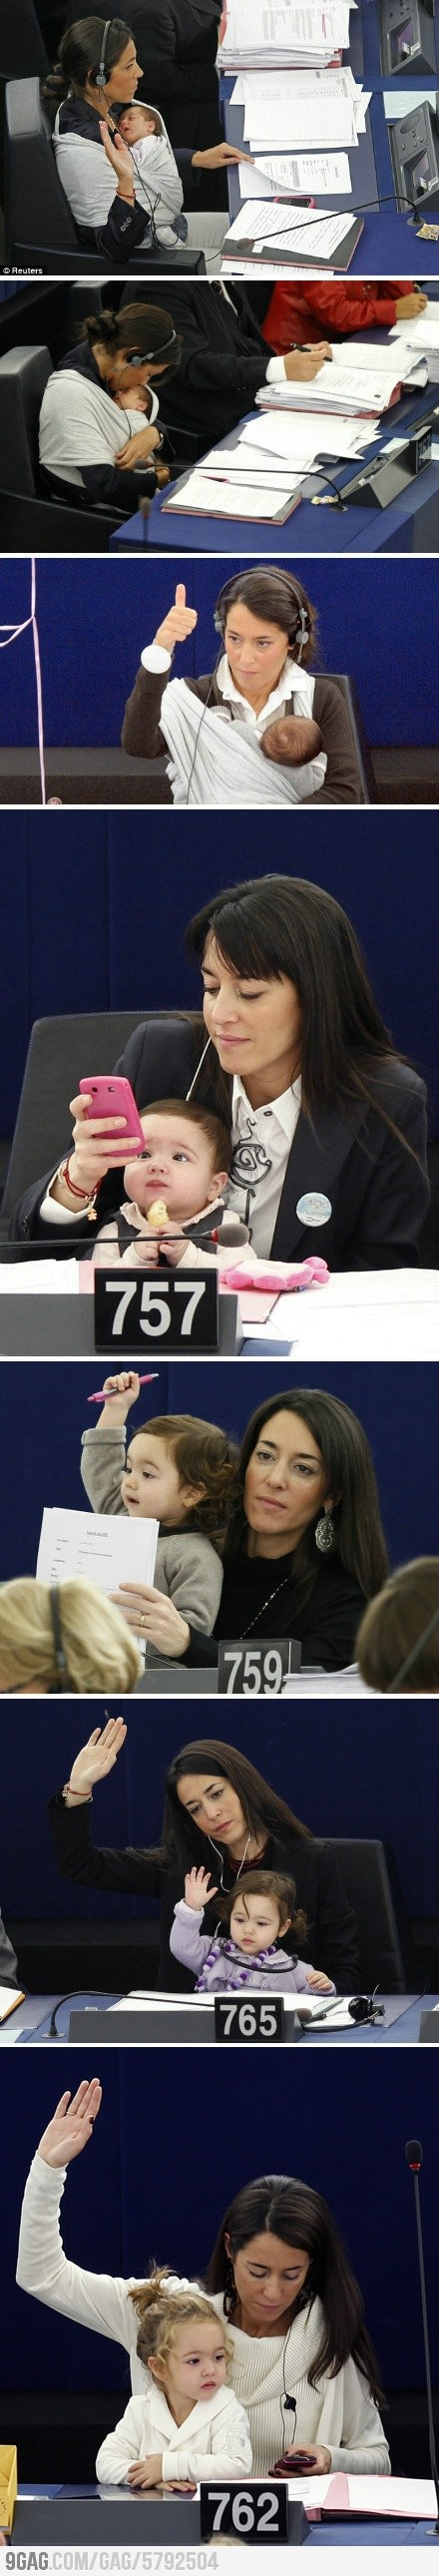 WORKING MOMS - Licia Ronzulli is elected in the European Parliament, is known for taking her daughter, Vittoria, to the plenary sessions in Strasbourg.